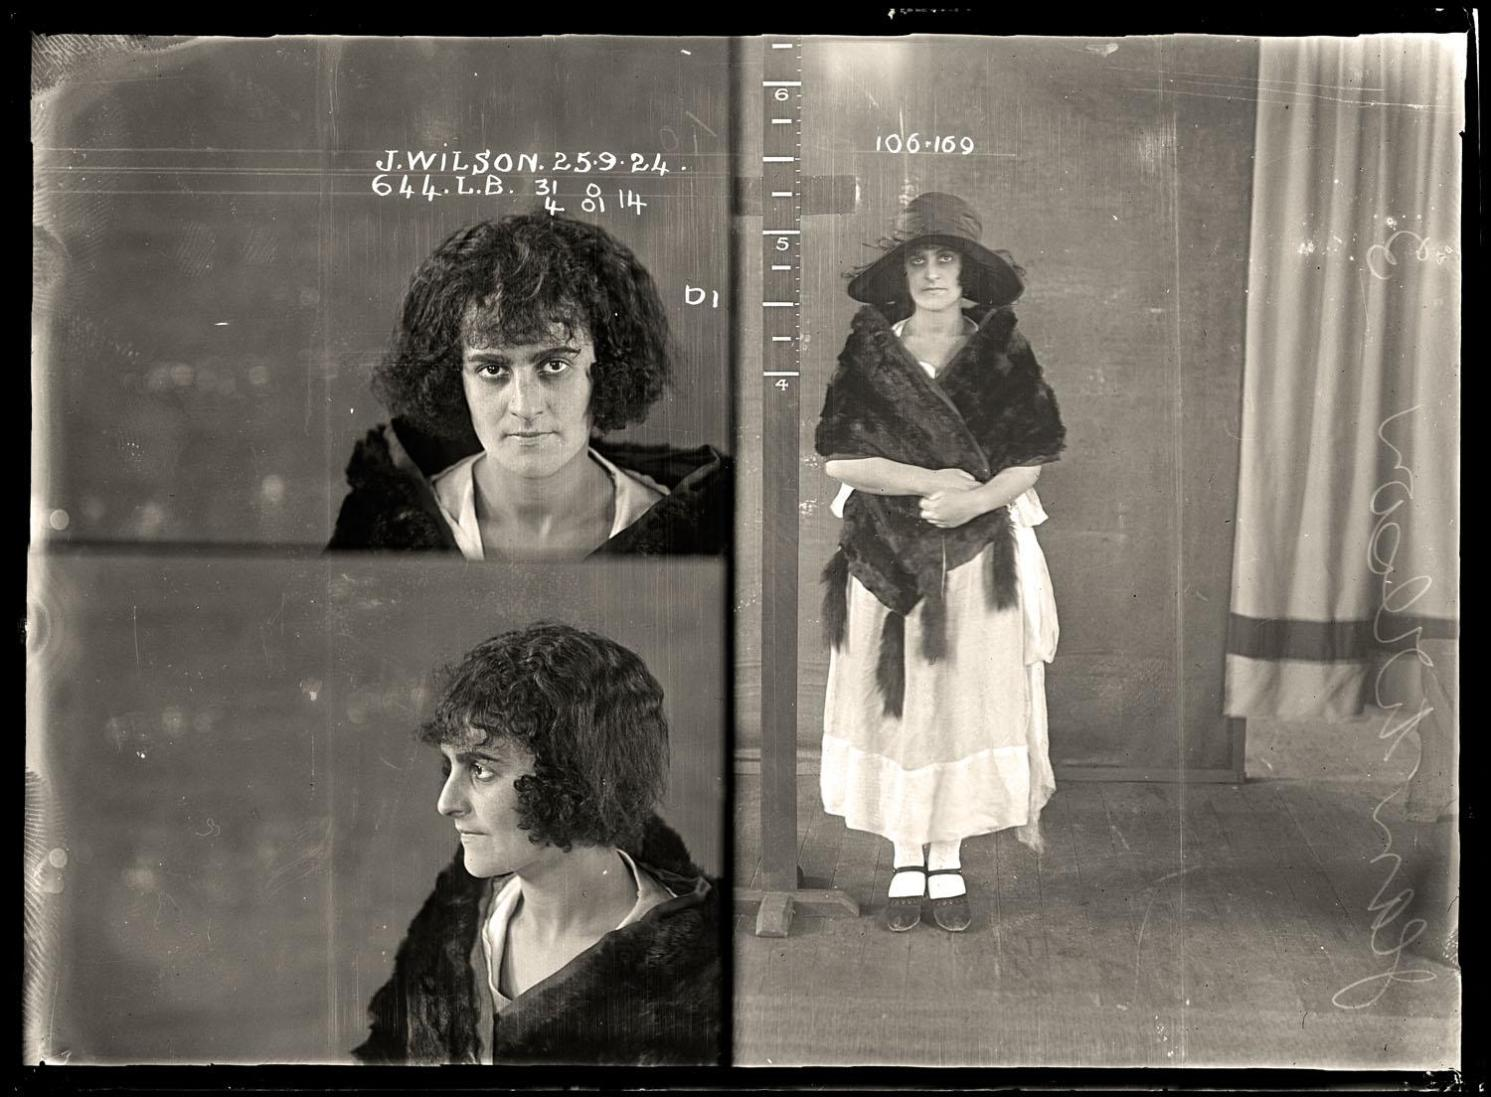 Jean Wilson, criminal record number 644LB, 25 September 1924. State Reformatory for Women, Long Bay, NSW.